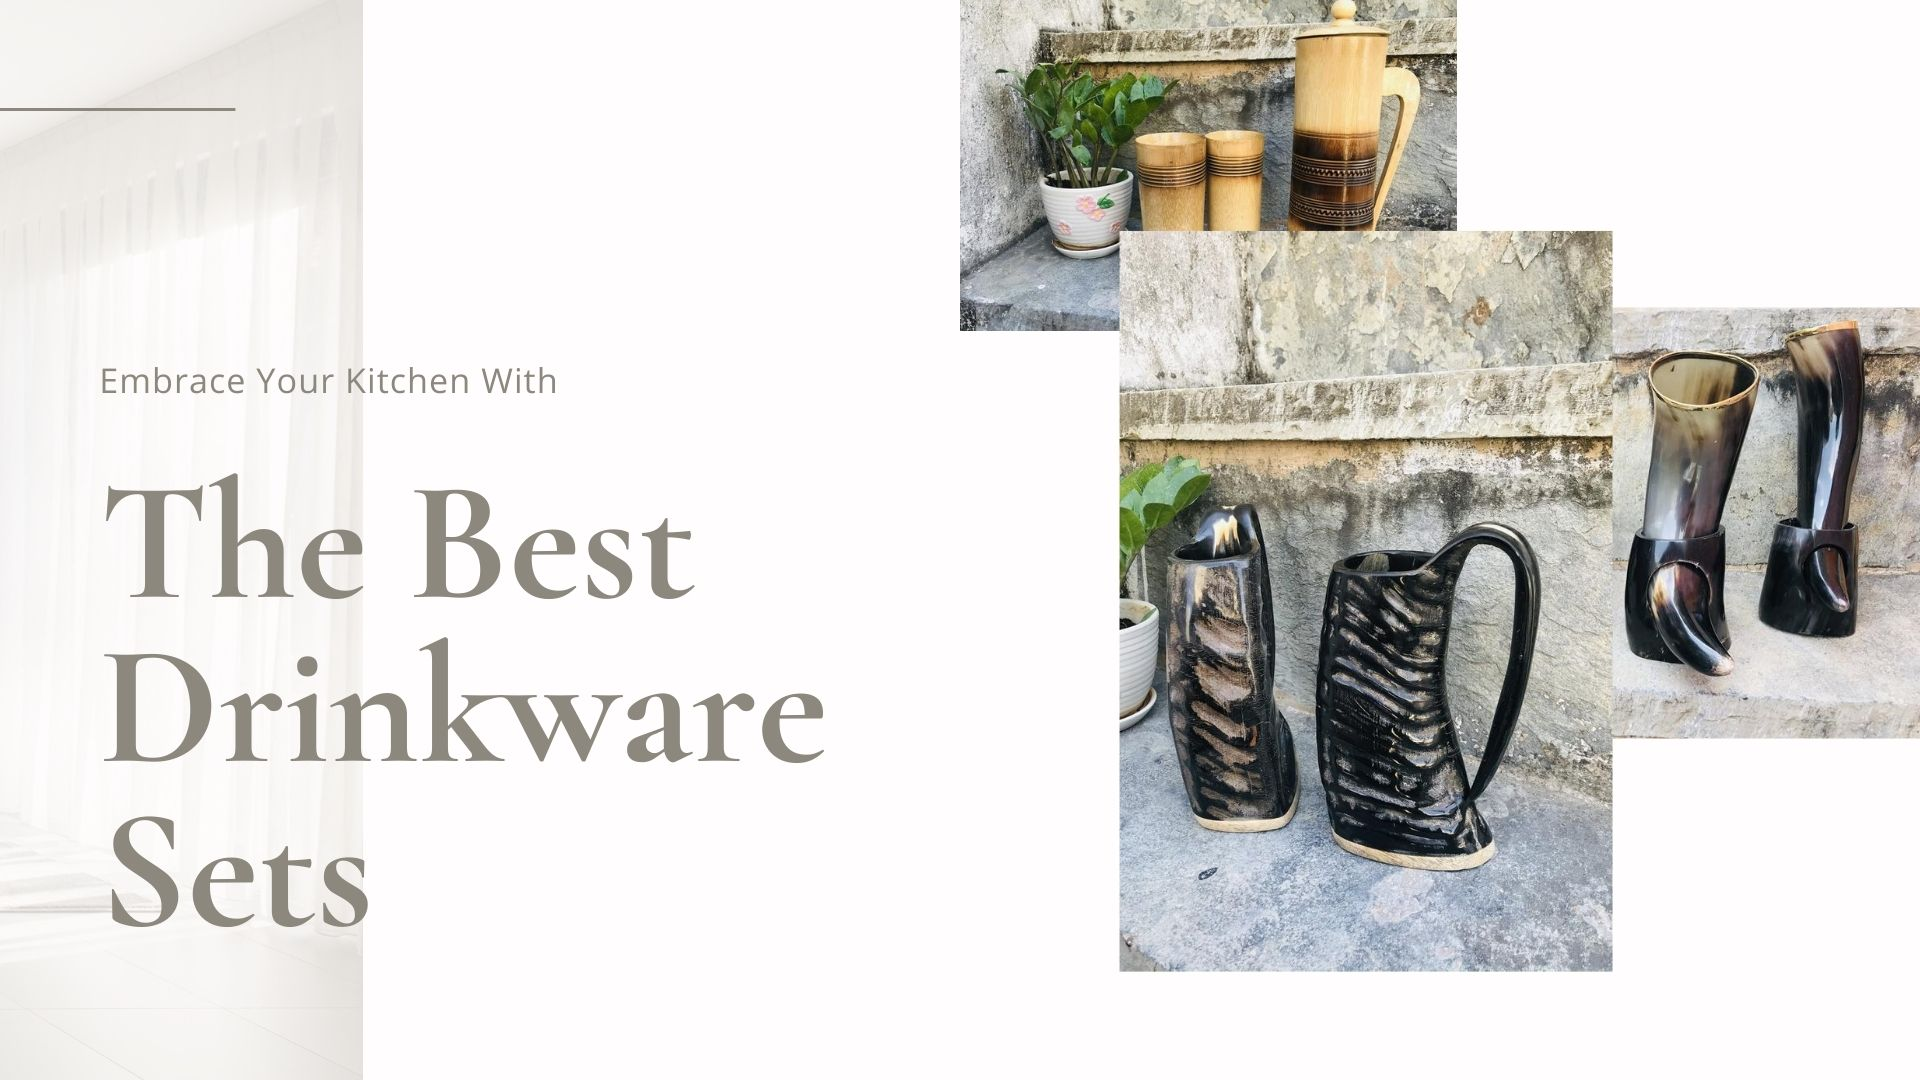 7 Best Drinkware Sets For Your Kitchen That Are Pretty Innovative